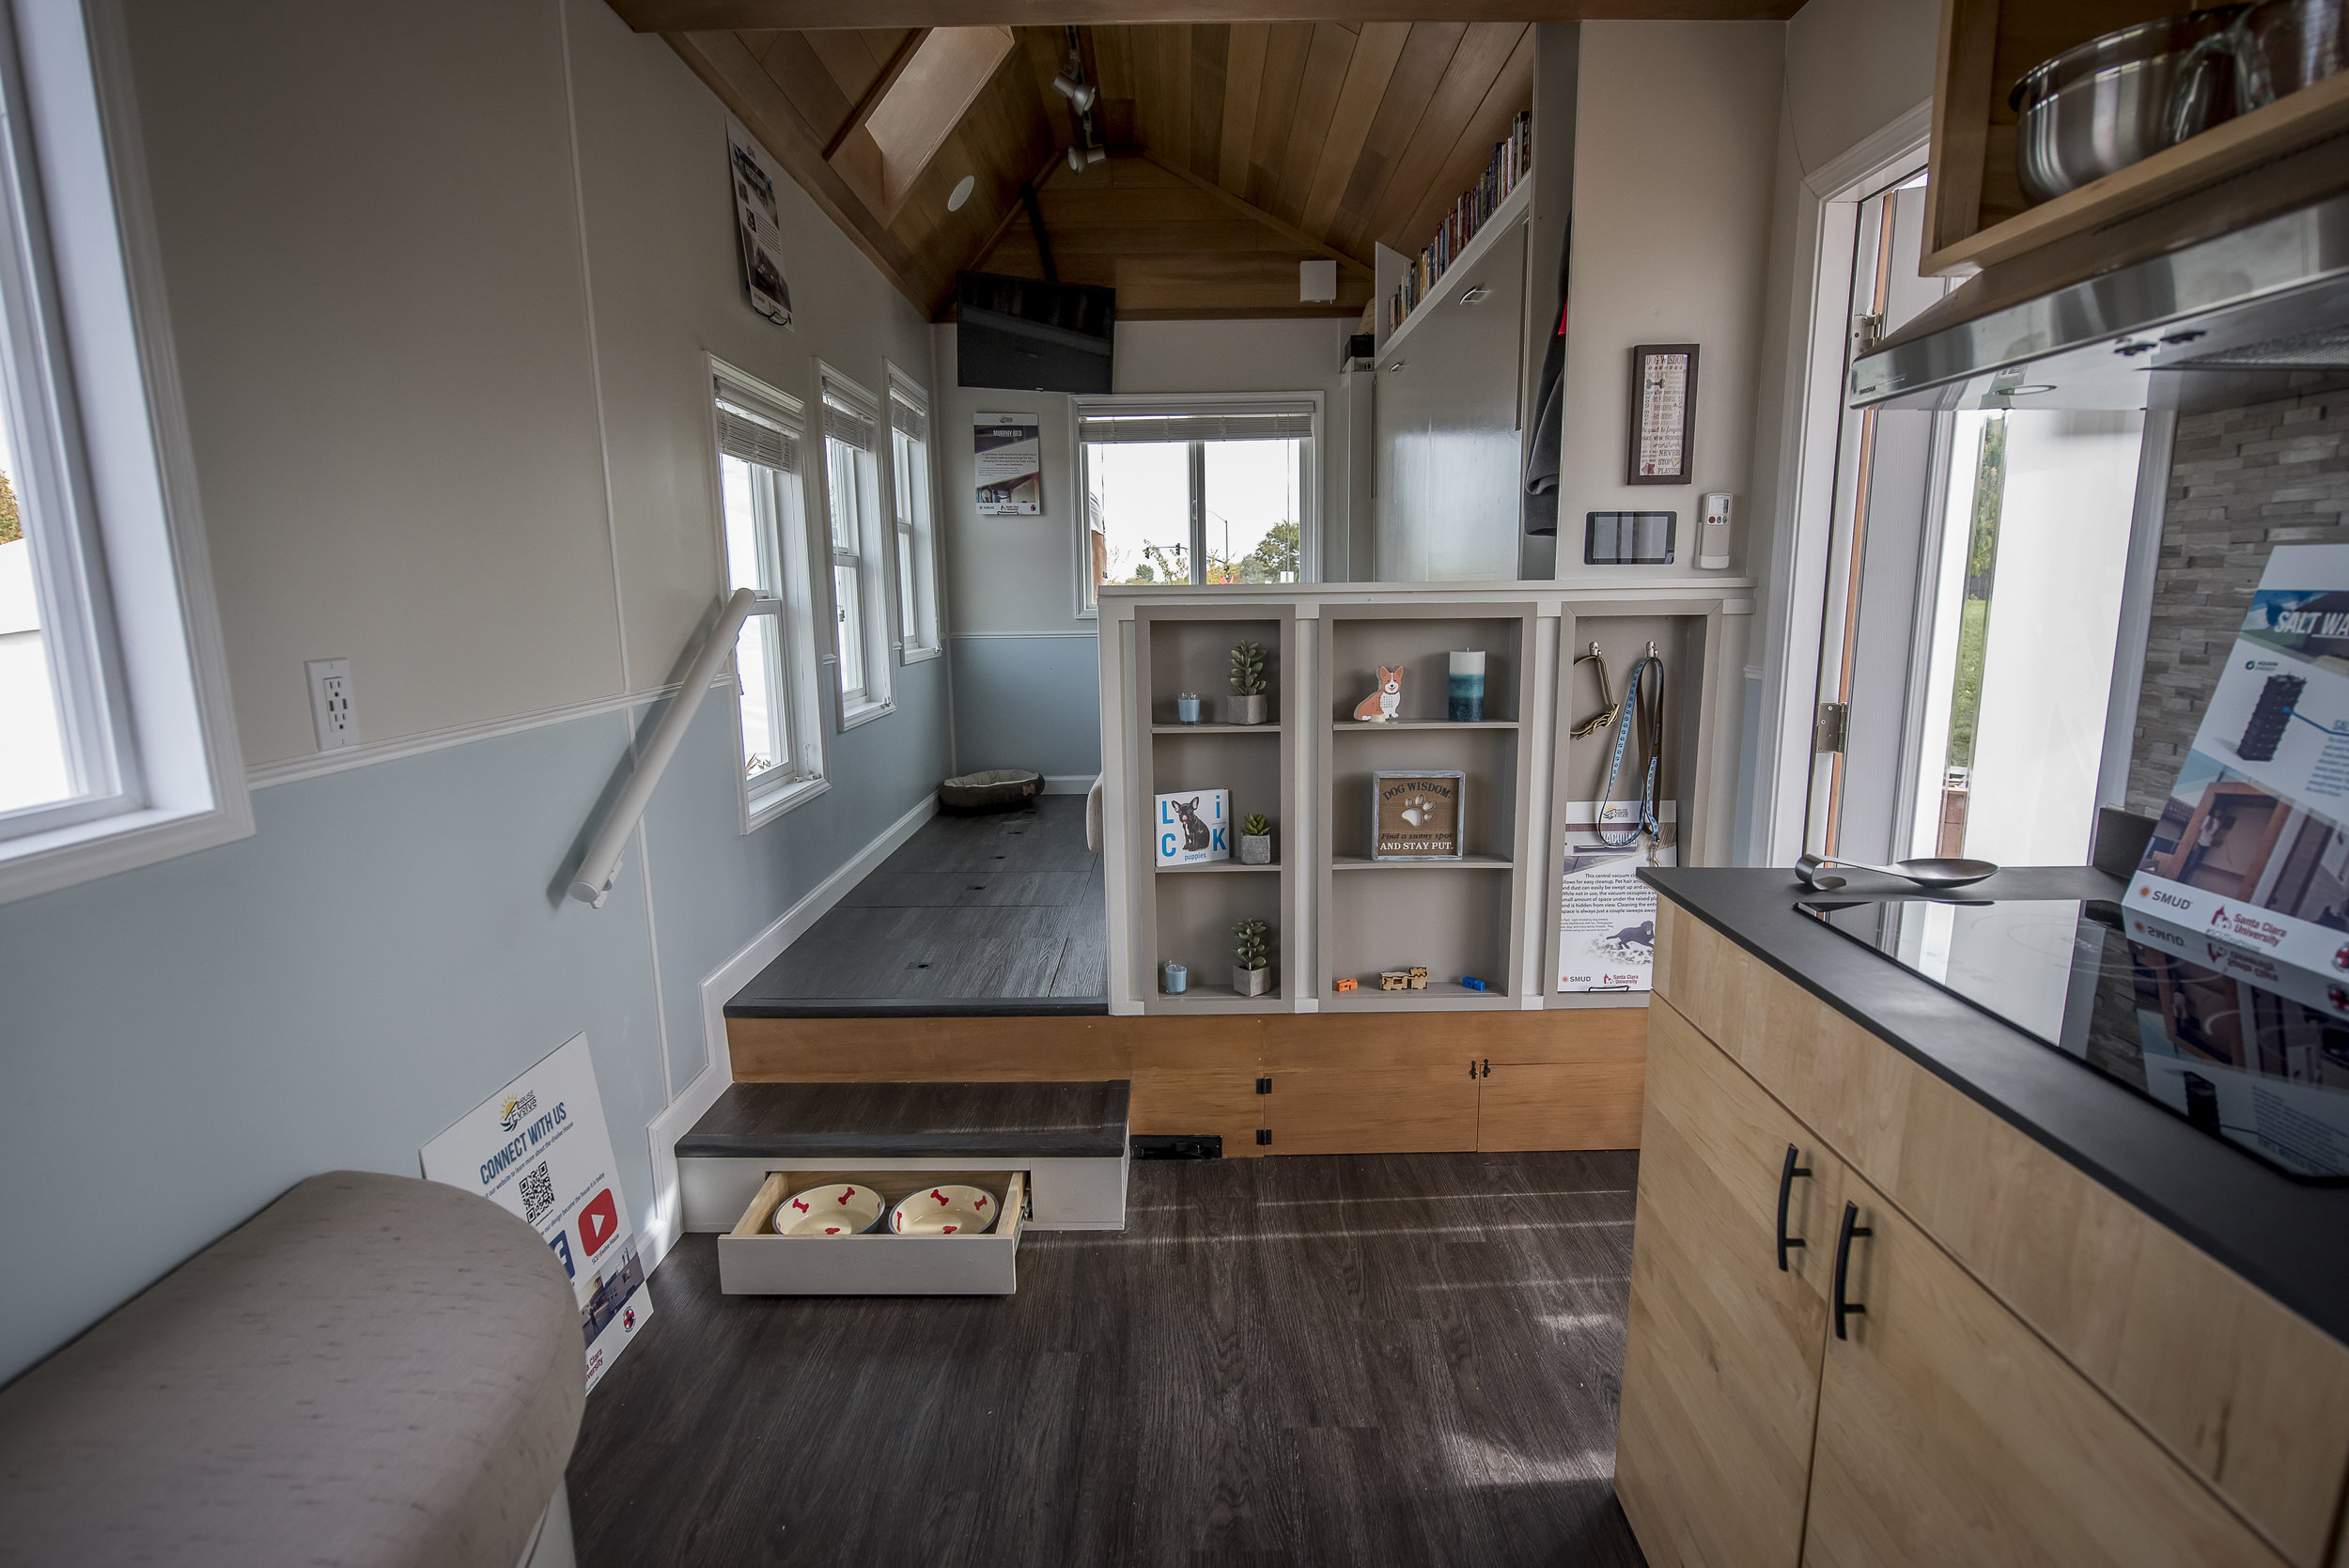 JL161013_4161_0244_TinyHouseCompetition.jpg